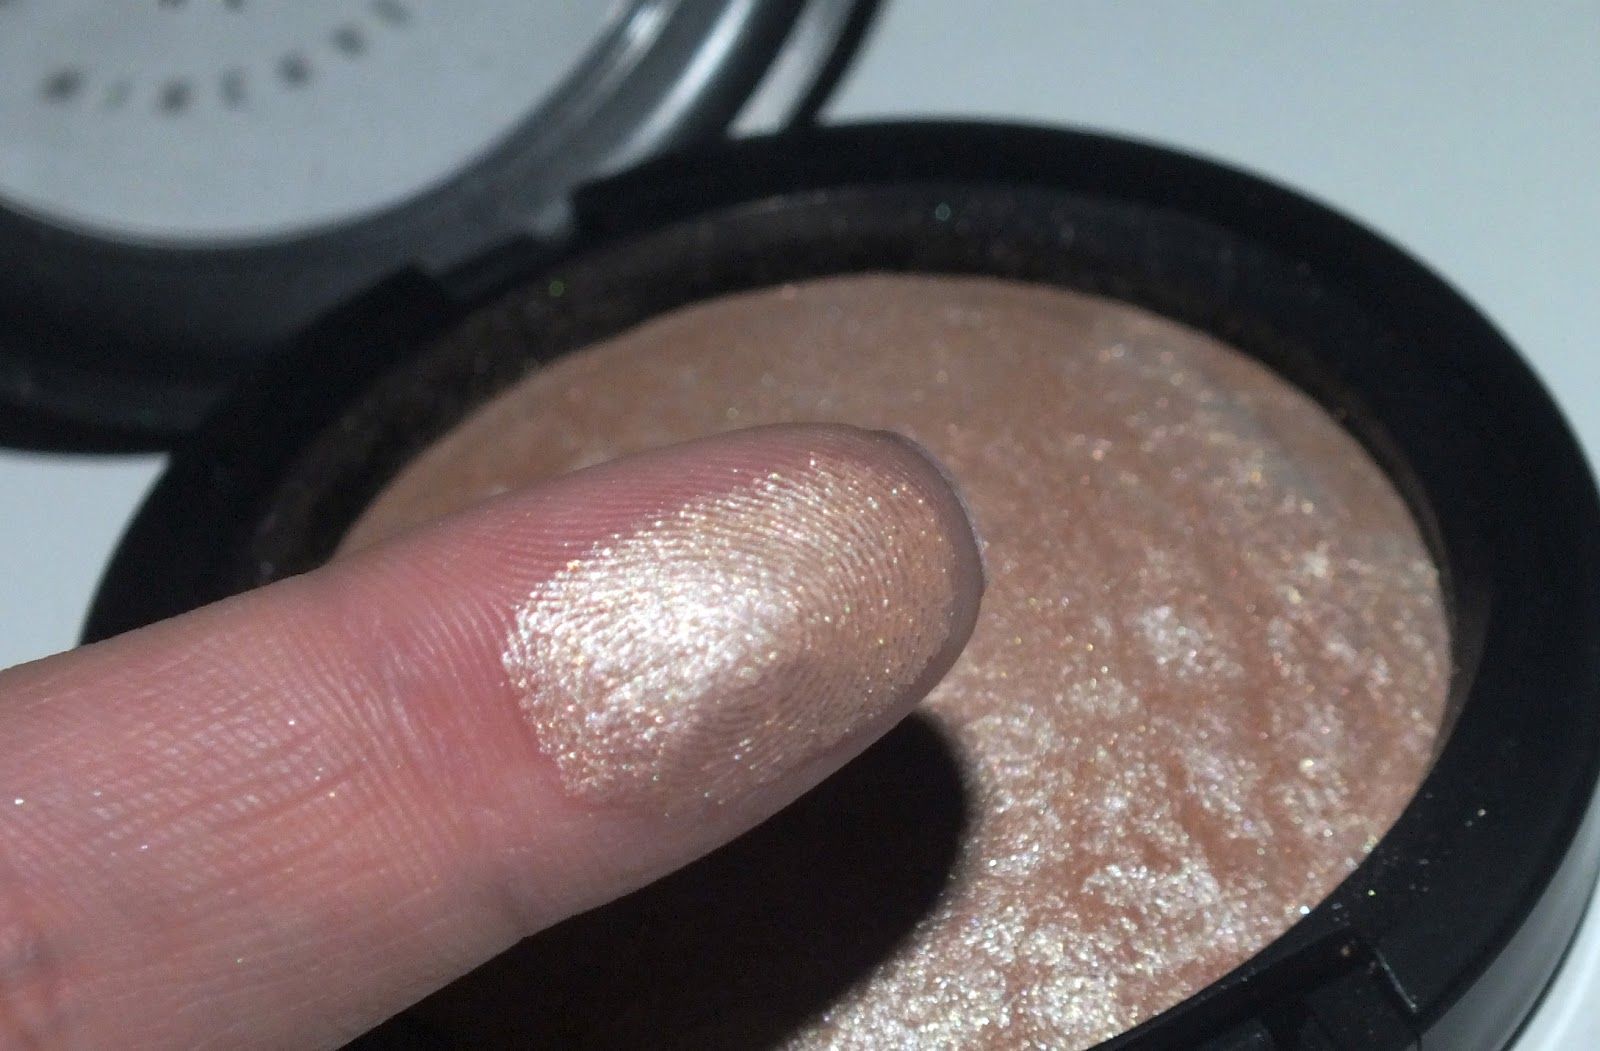 Mac Soft And Gentle Mineralize